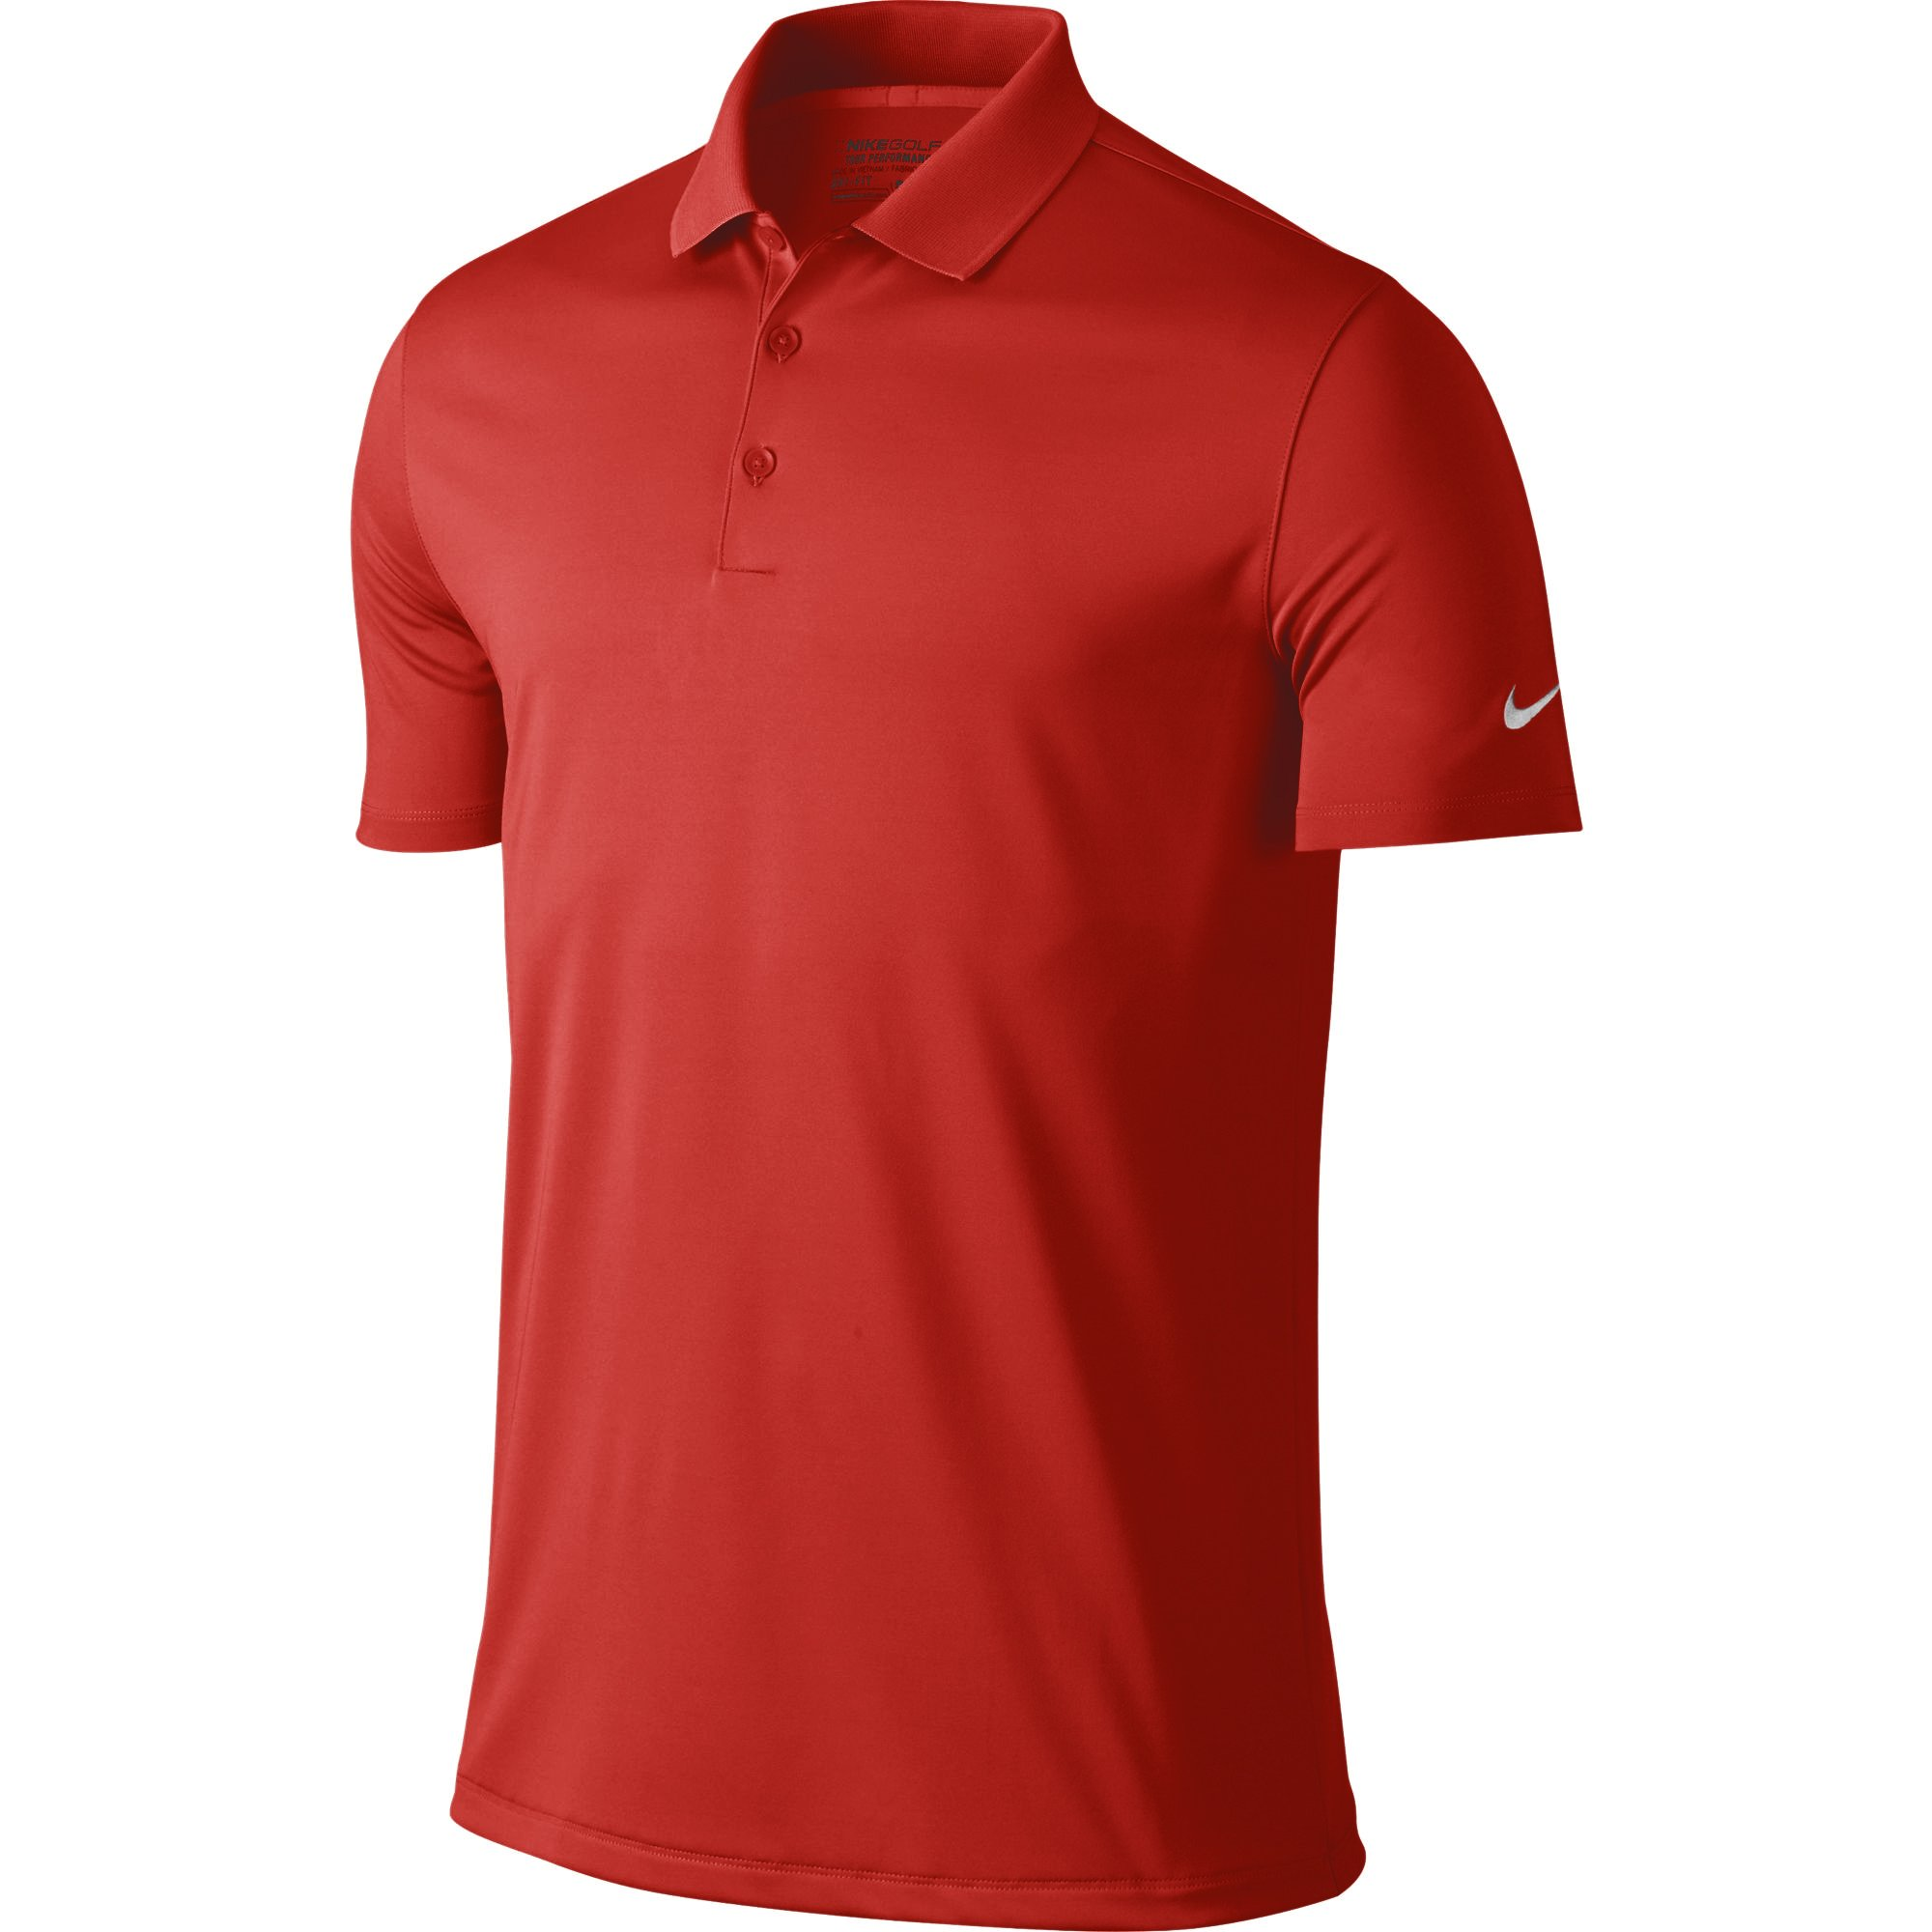 NIKE Men's Dry Victory Polo, University Red/White, XX-Large by Nike